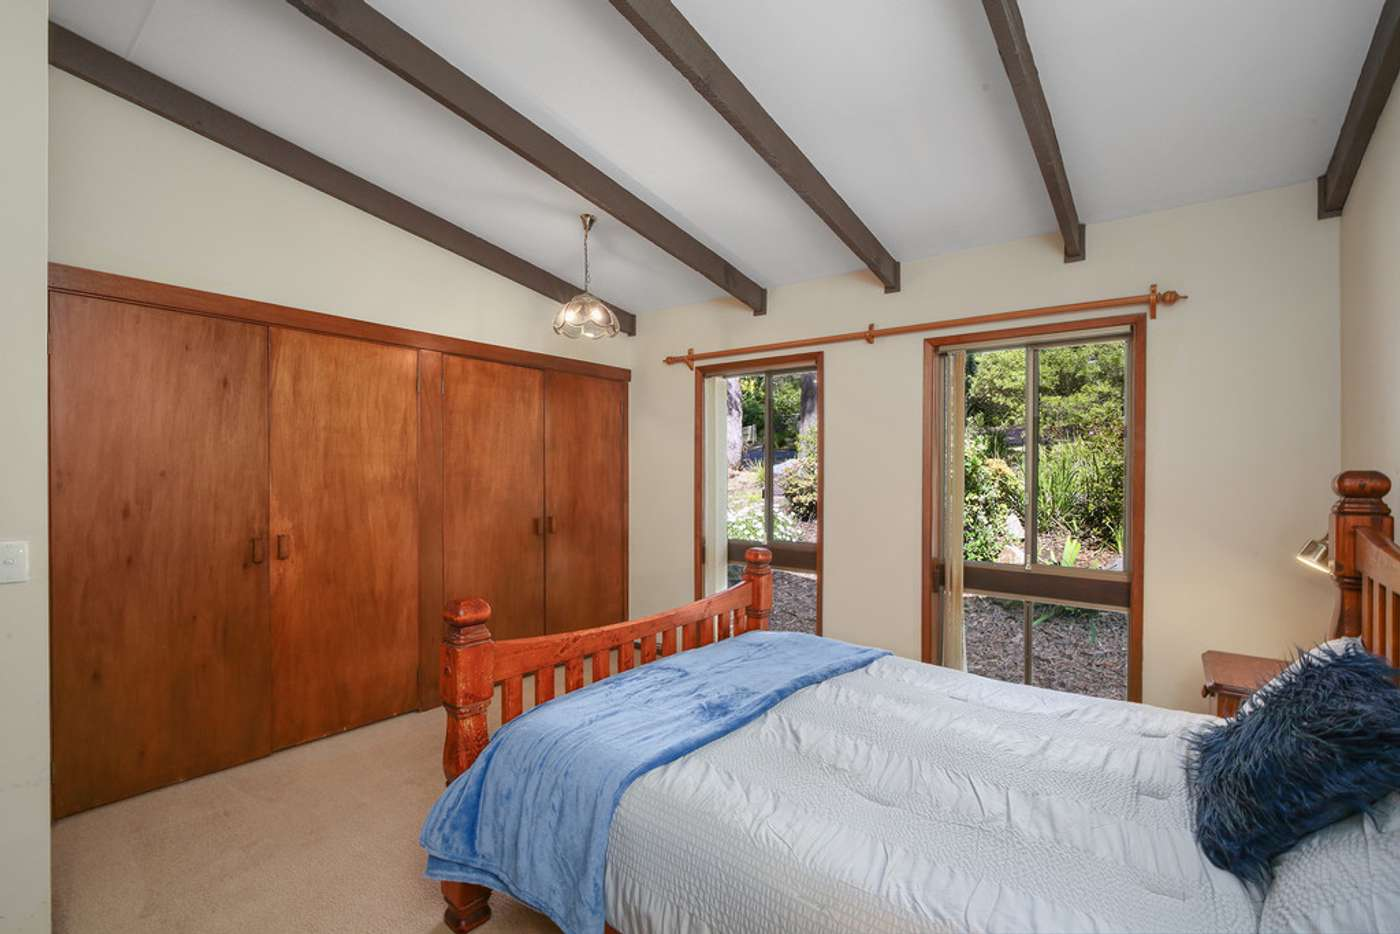 Sixth view of Homely house listing, 31 Hillcrest Road, Empire Bay NSW 2257